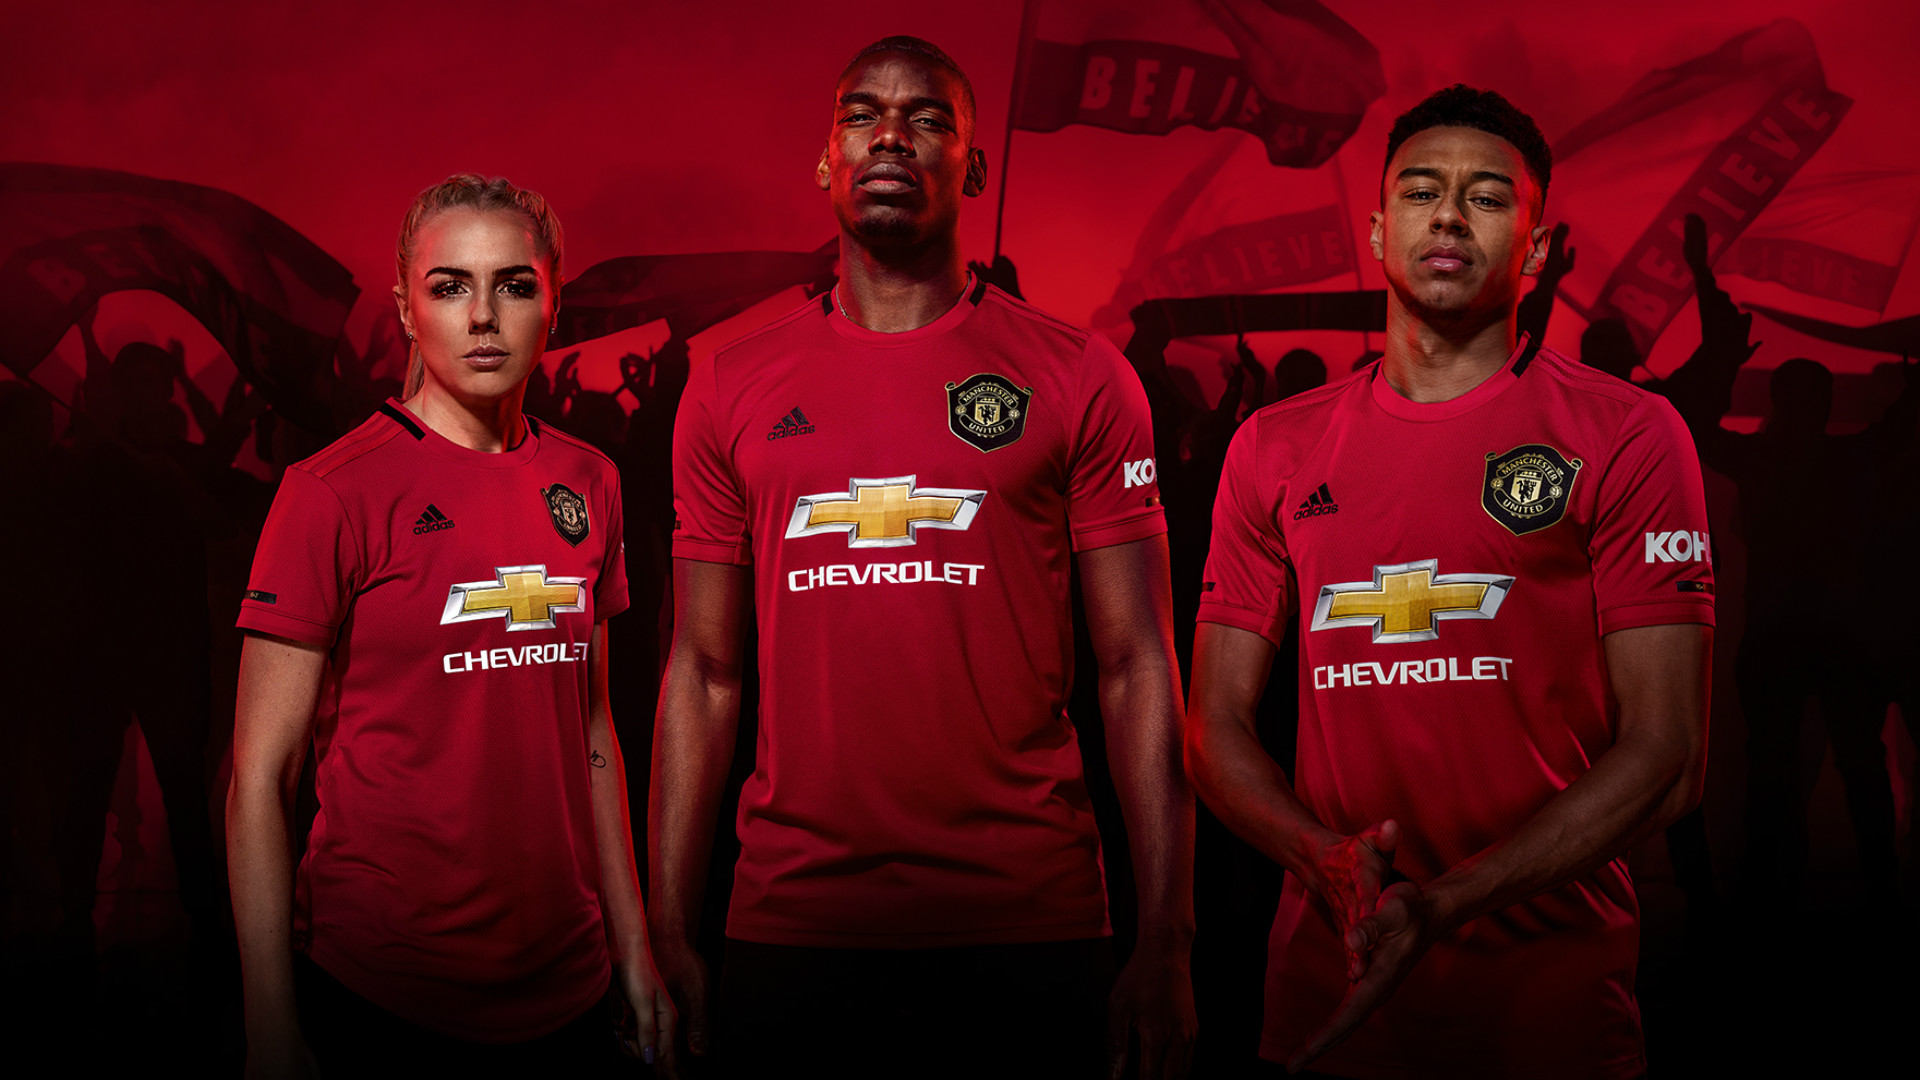 Manchester United away kit for 2019/20 season leaked